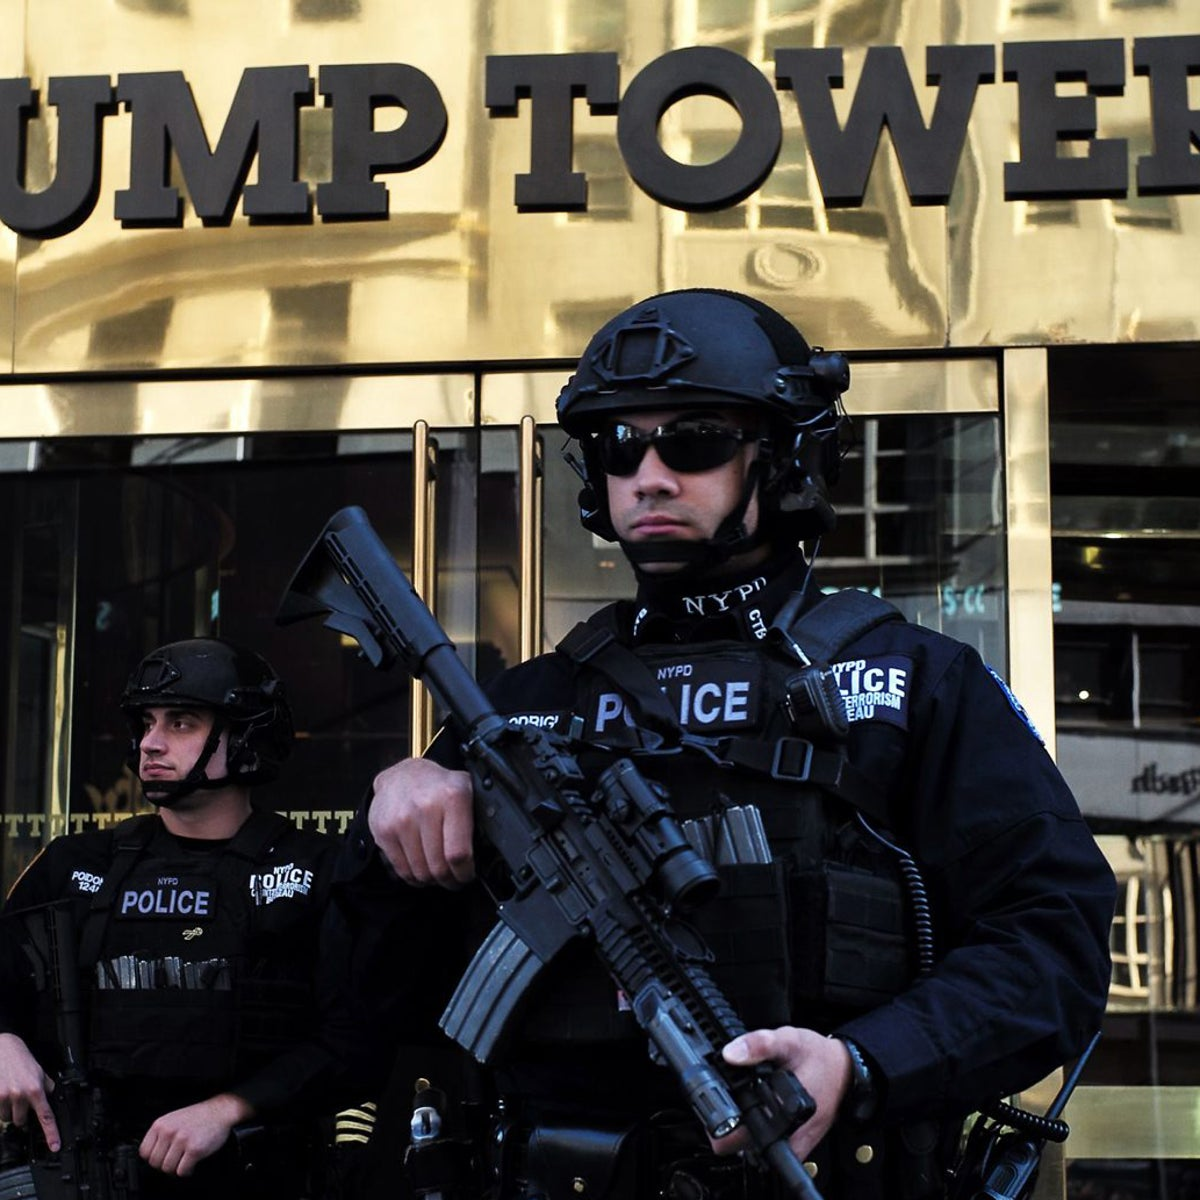 New York Police Department (NYPD) officers guard the main entrance of the Trump Tower, where US President-elect Donald Trump holds meetings, in New York on November 14, 2016.  President-elect Donald Trump has vowed to move aggressively on a conservative agenda in filling Supreme Court vacancies, cracking down on immigration and cutting taxes, but also sought to reassure worried Americans they have nothing to fear from his presidency.